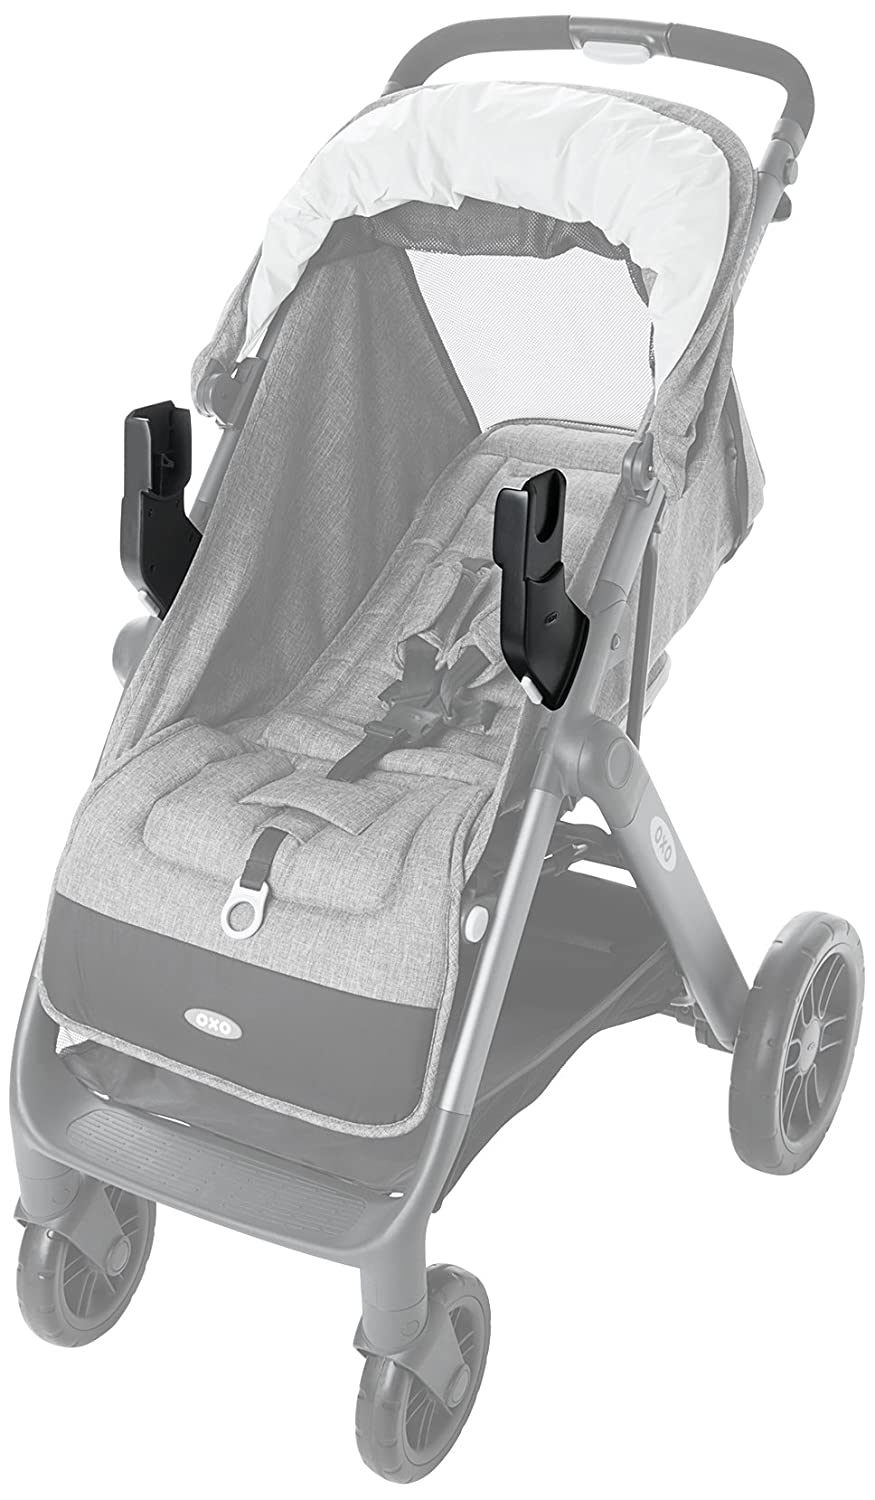 OXO Tot Cubby Stroller Car Seat Adaptor Compatible with Maxi Cosi/Nuna/Cybex